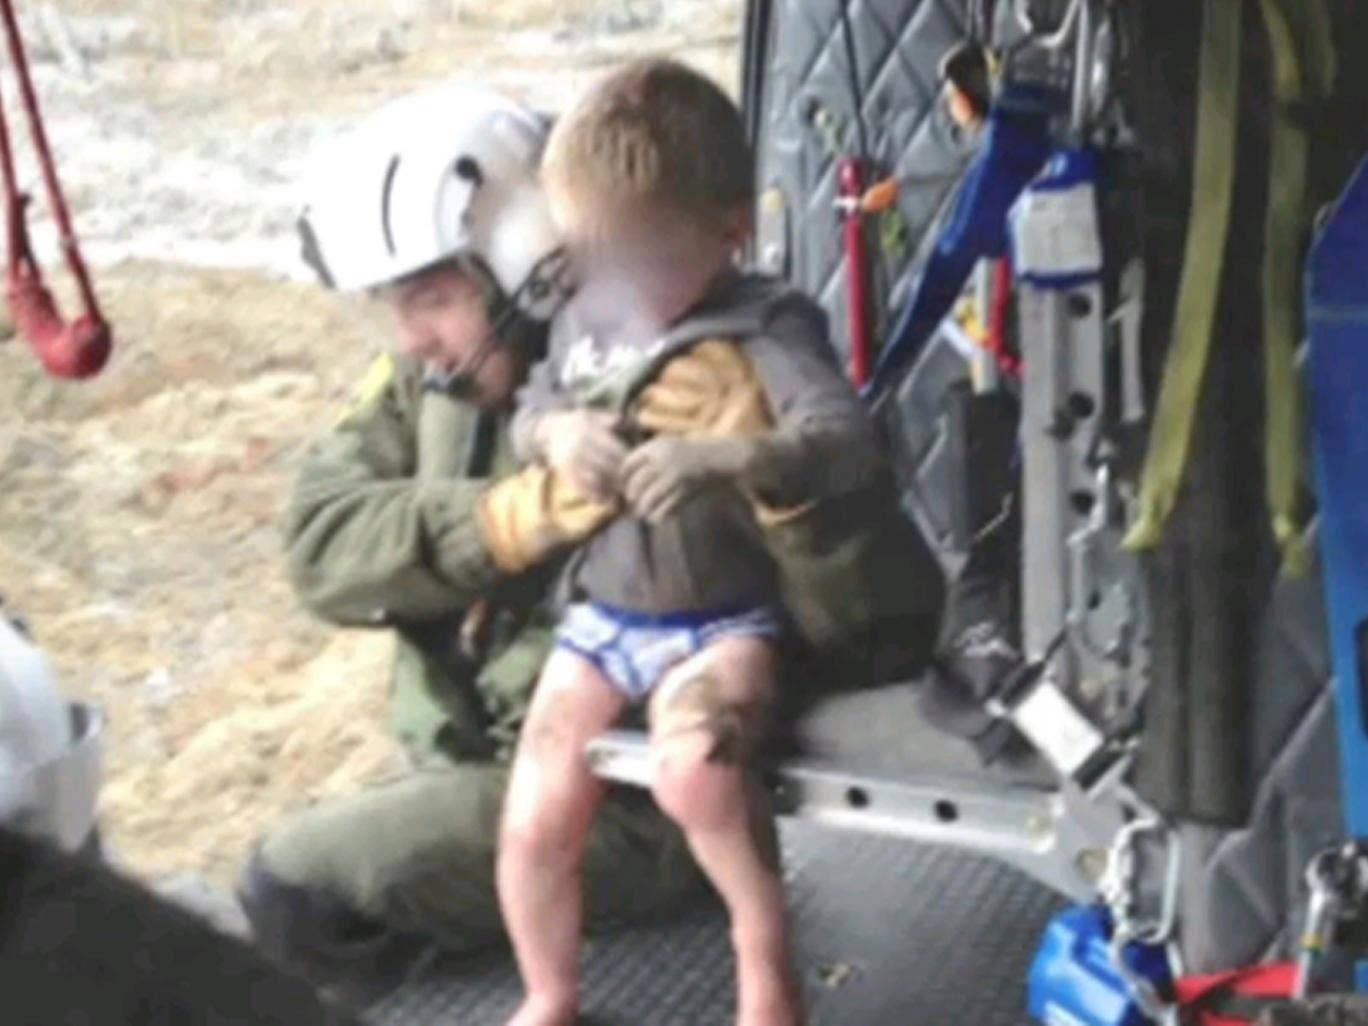 A helicopter rescuer snatches a four-year-old boy from the mudslide